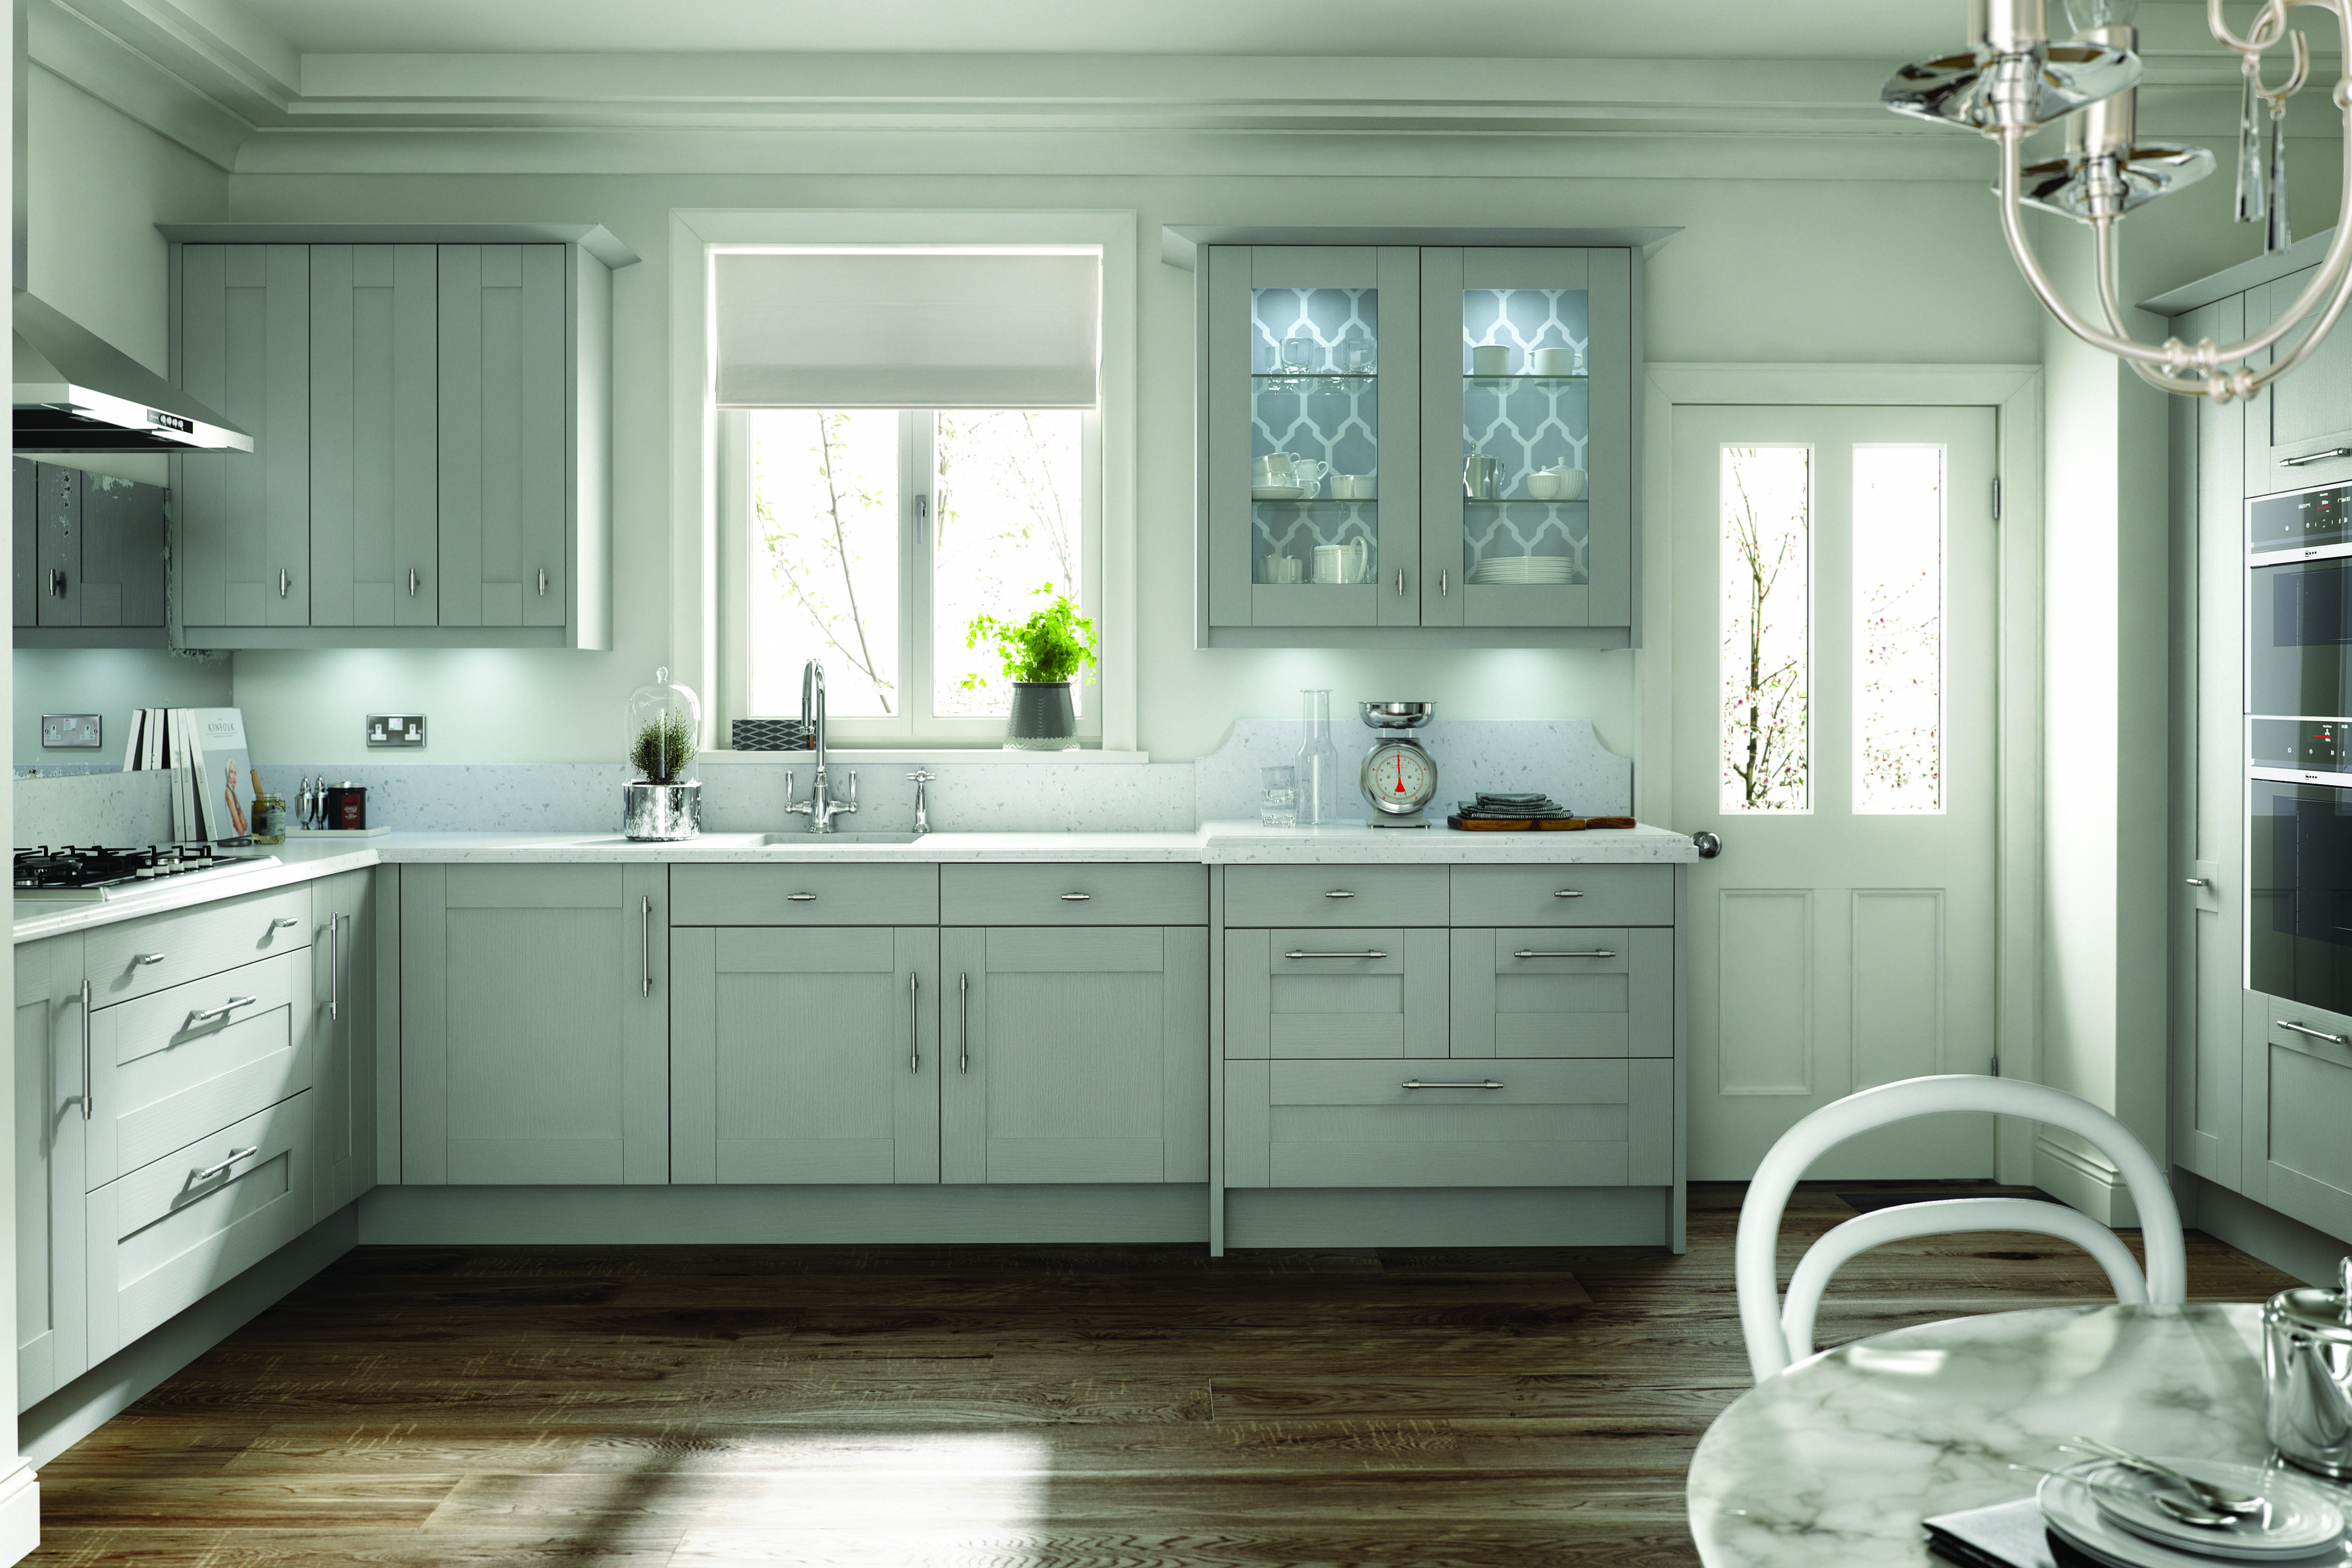 remo alabaster contemporary kitchen by sheraton interiors browse